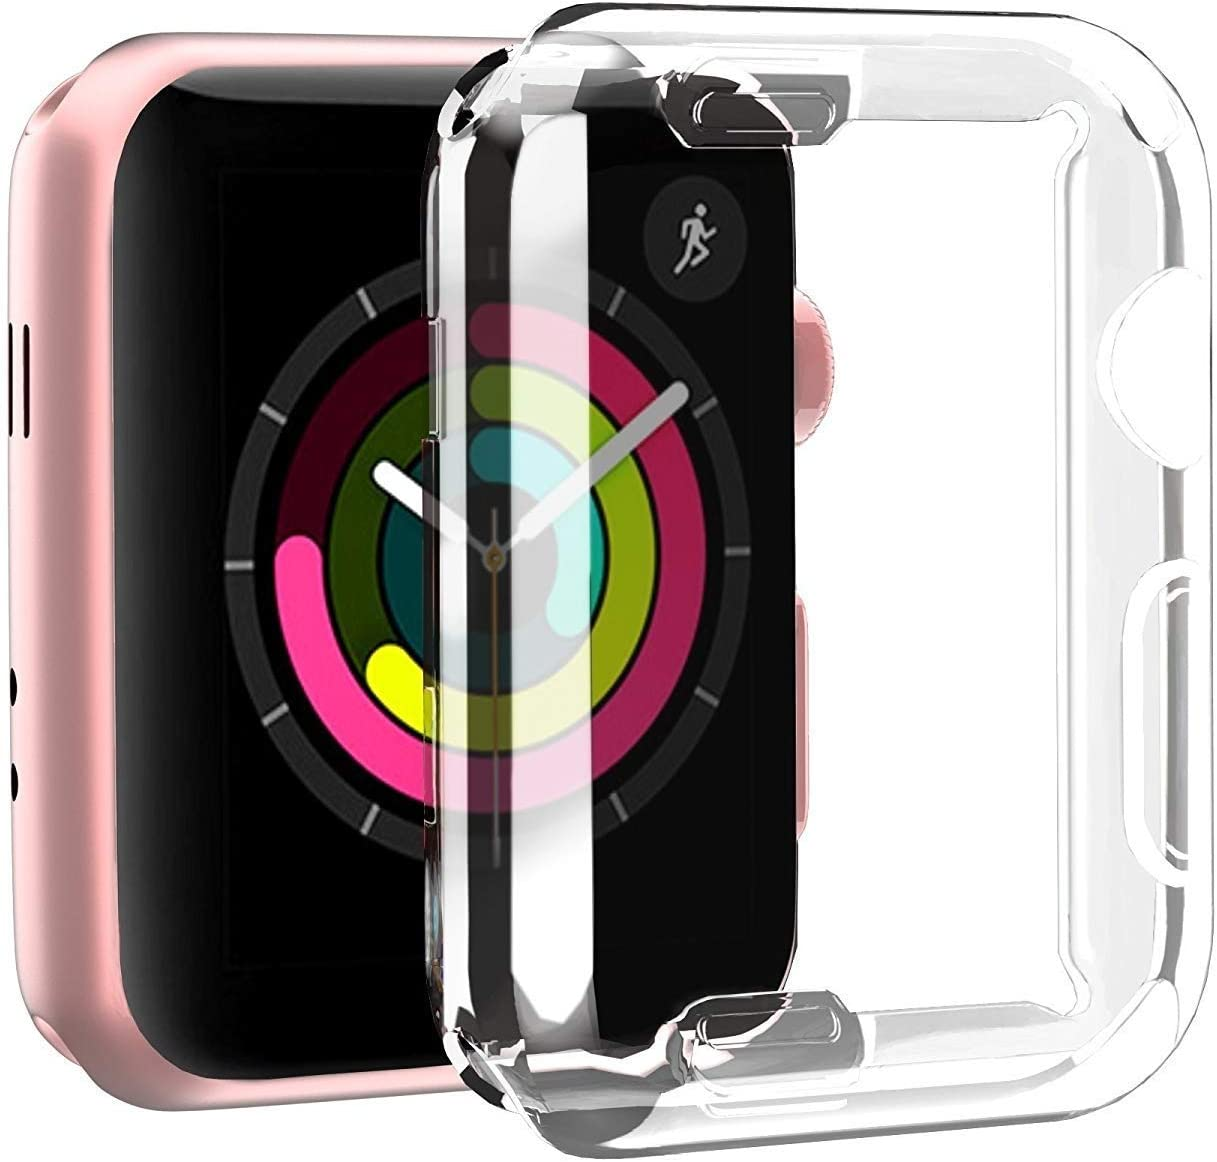 GW Case for Apple Watch Series 3 2 1 38mm with Buit in TPU Clear Screen Protector - All Around Protective Case High Definition Clear Ultra-Thin Cover for Apple iwatch 38mm